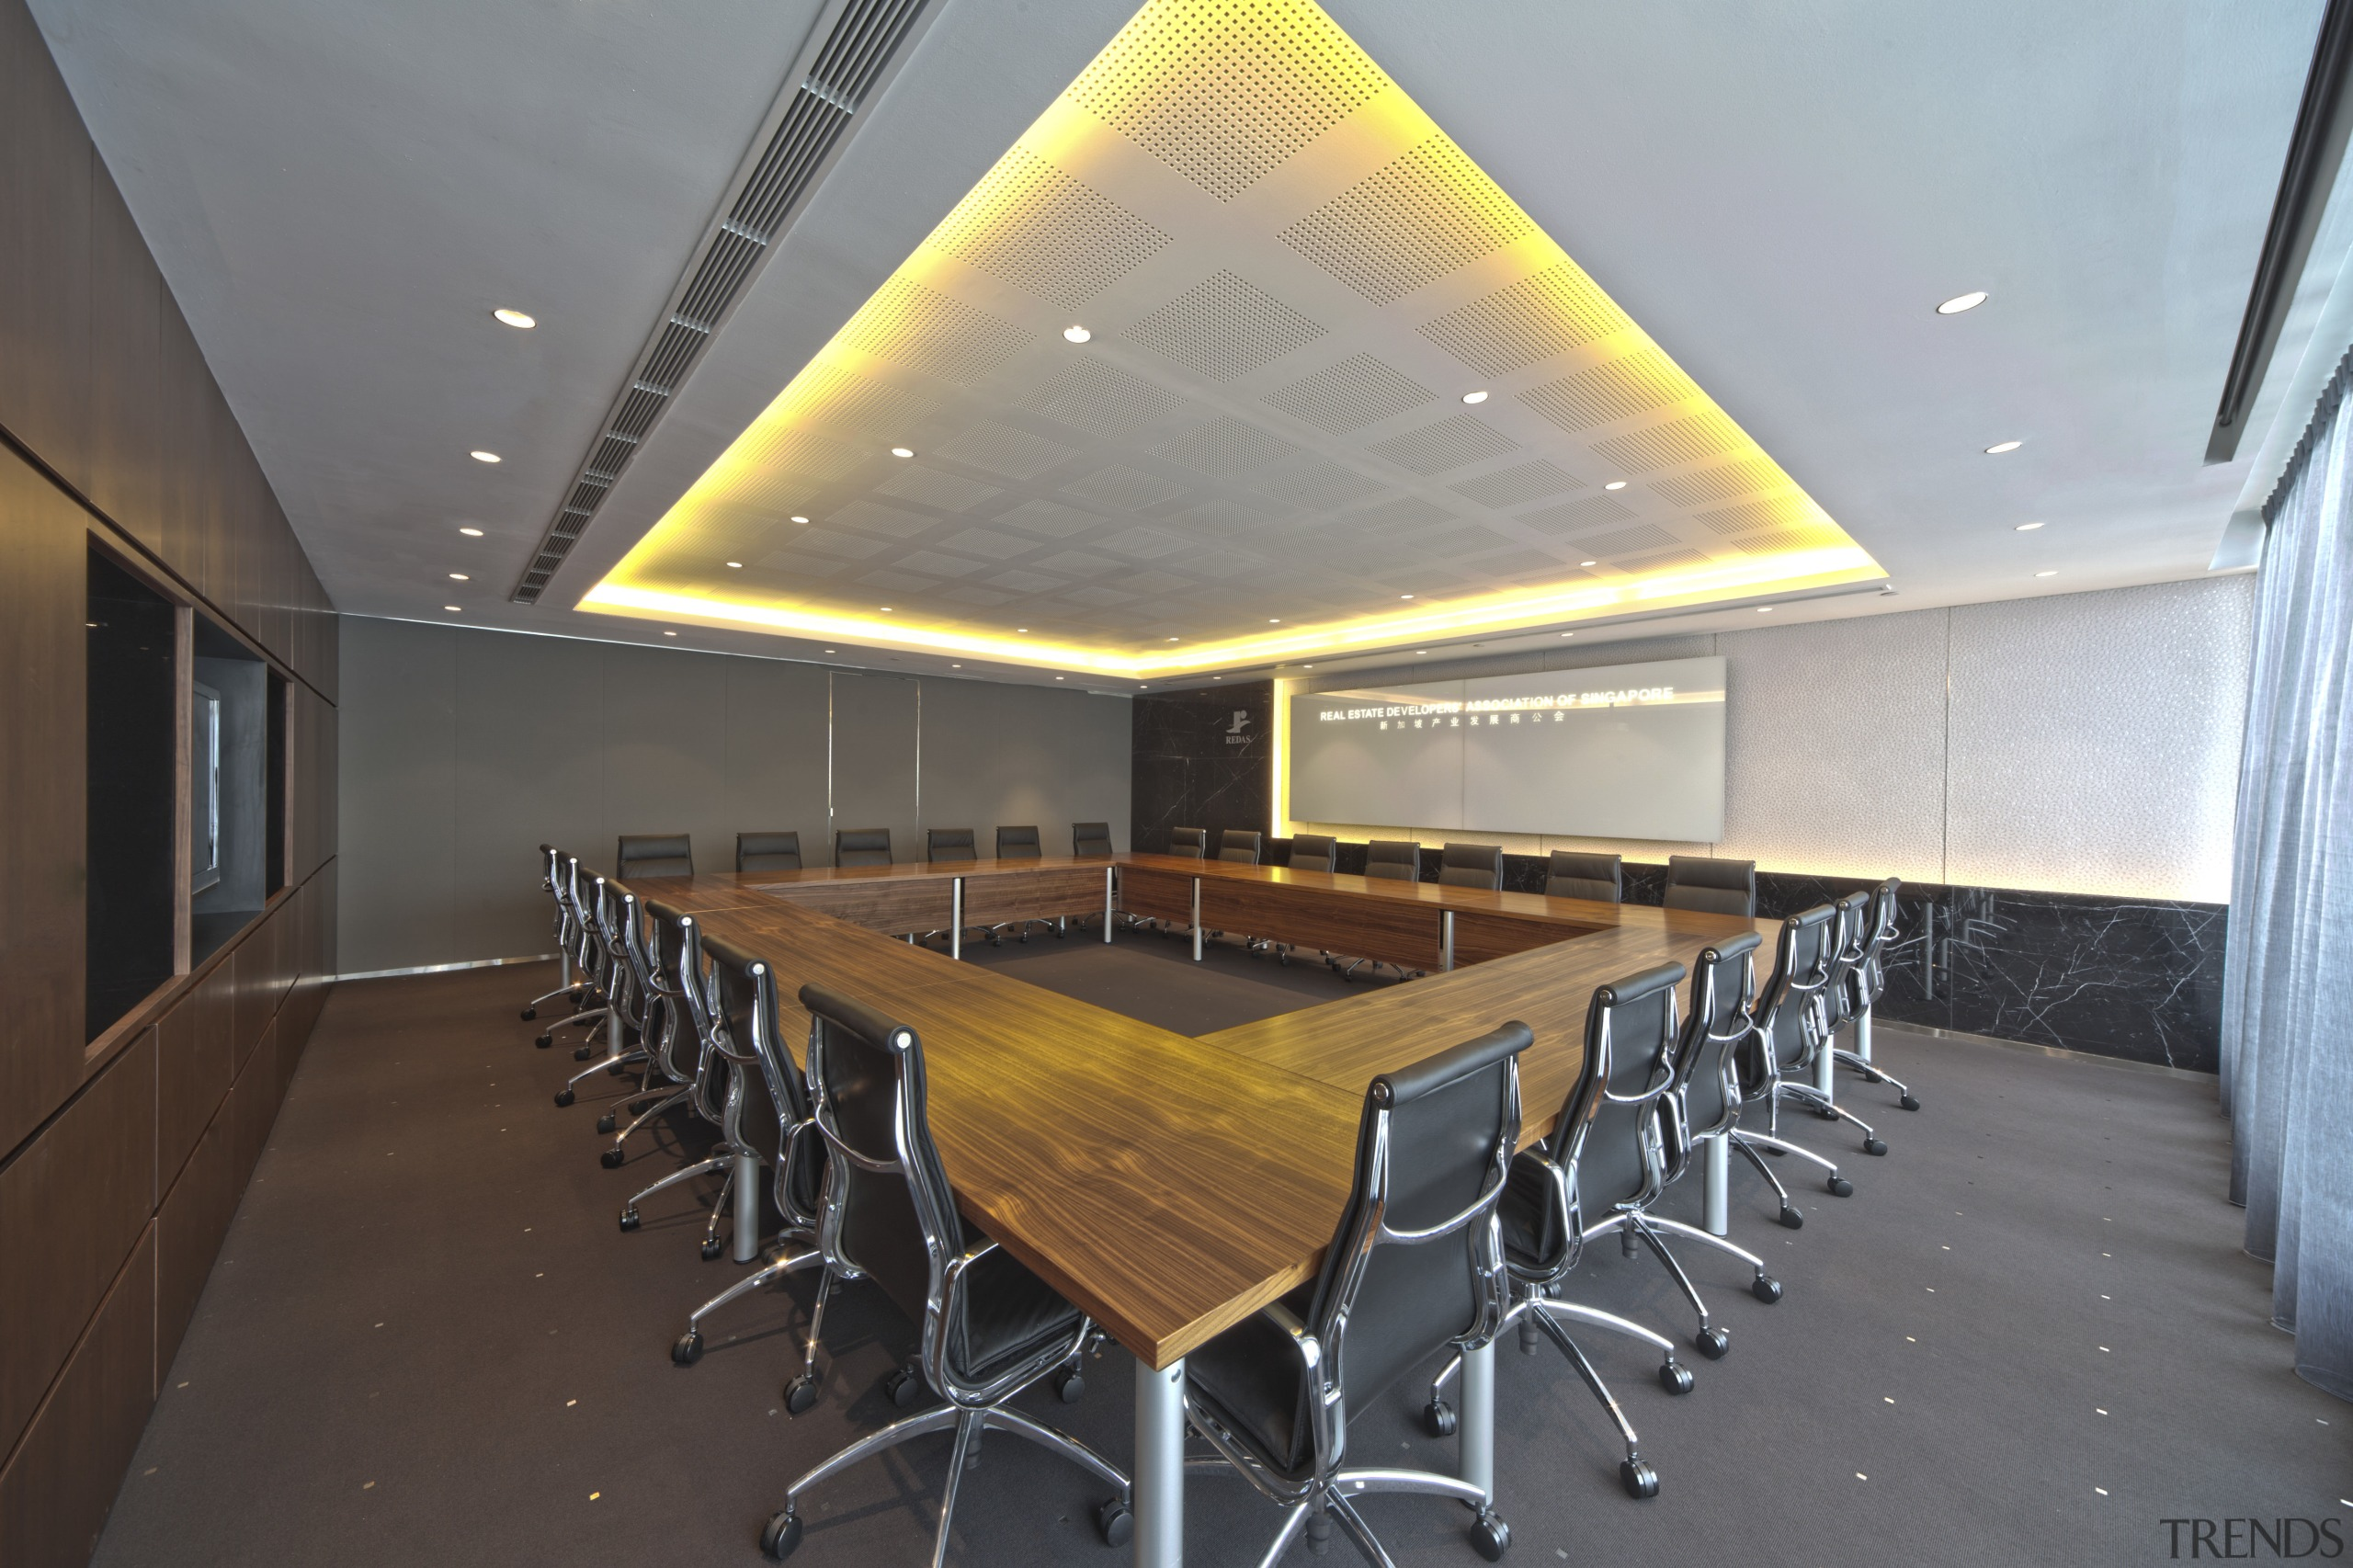 Contemporary offices of  the Real Estate Developer's architecture, auditorium, ceiling, conference hall, interior design, real estate, table, gray, black